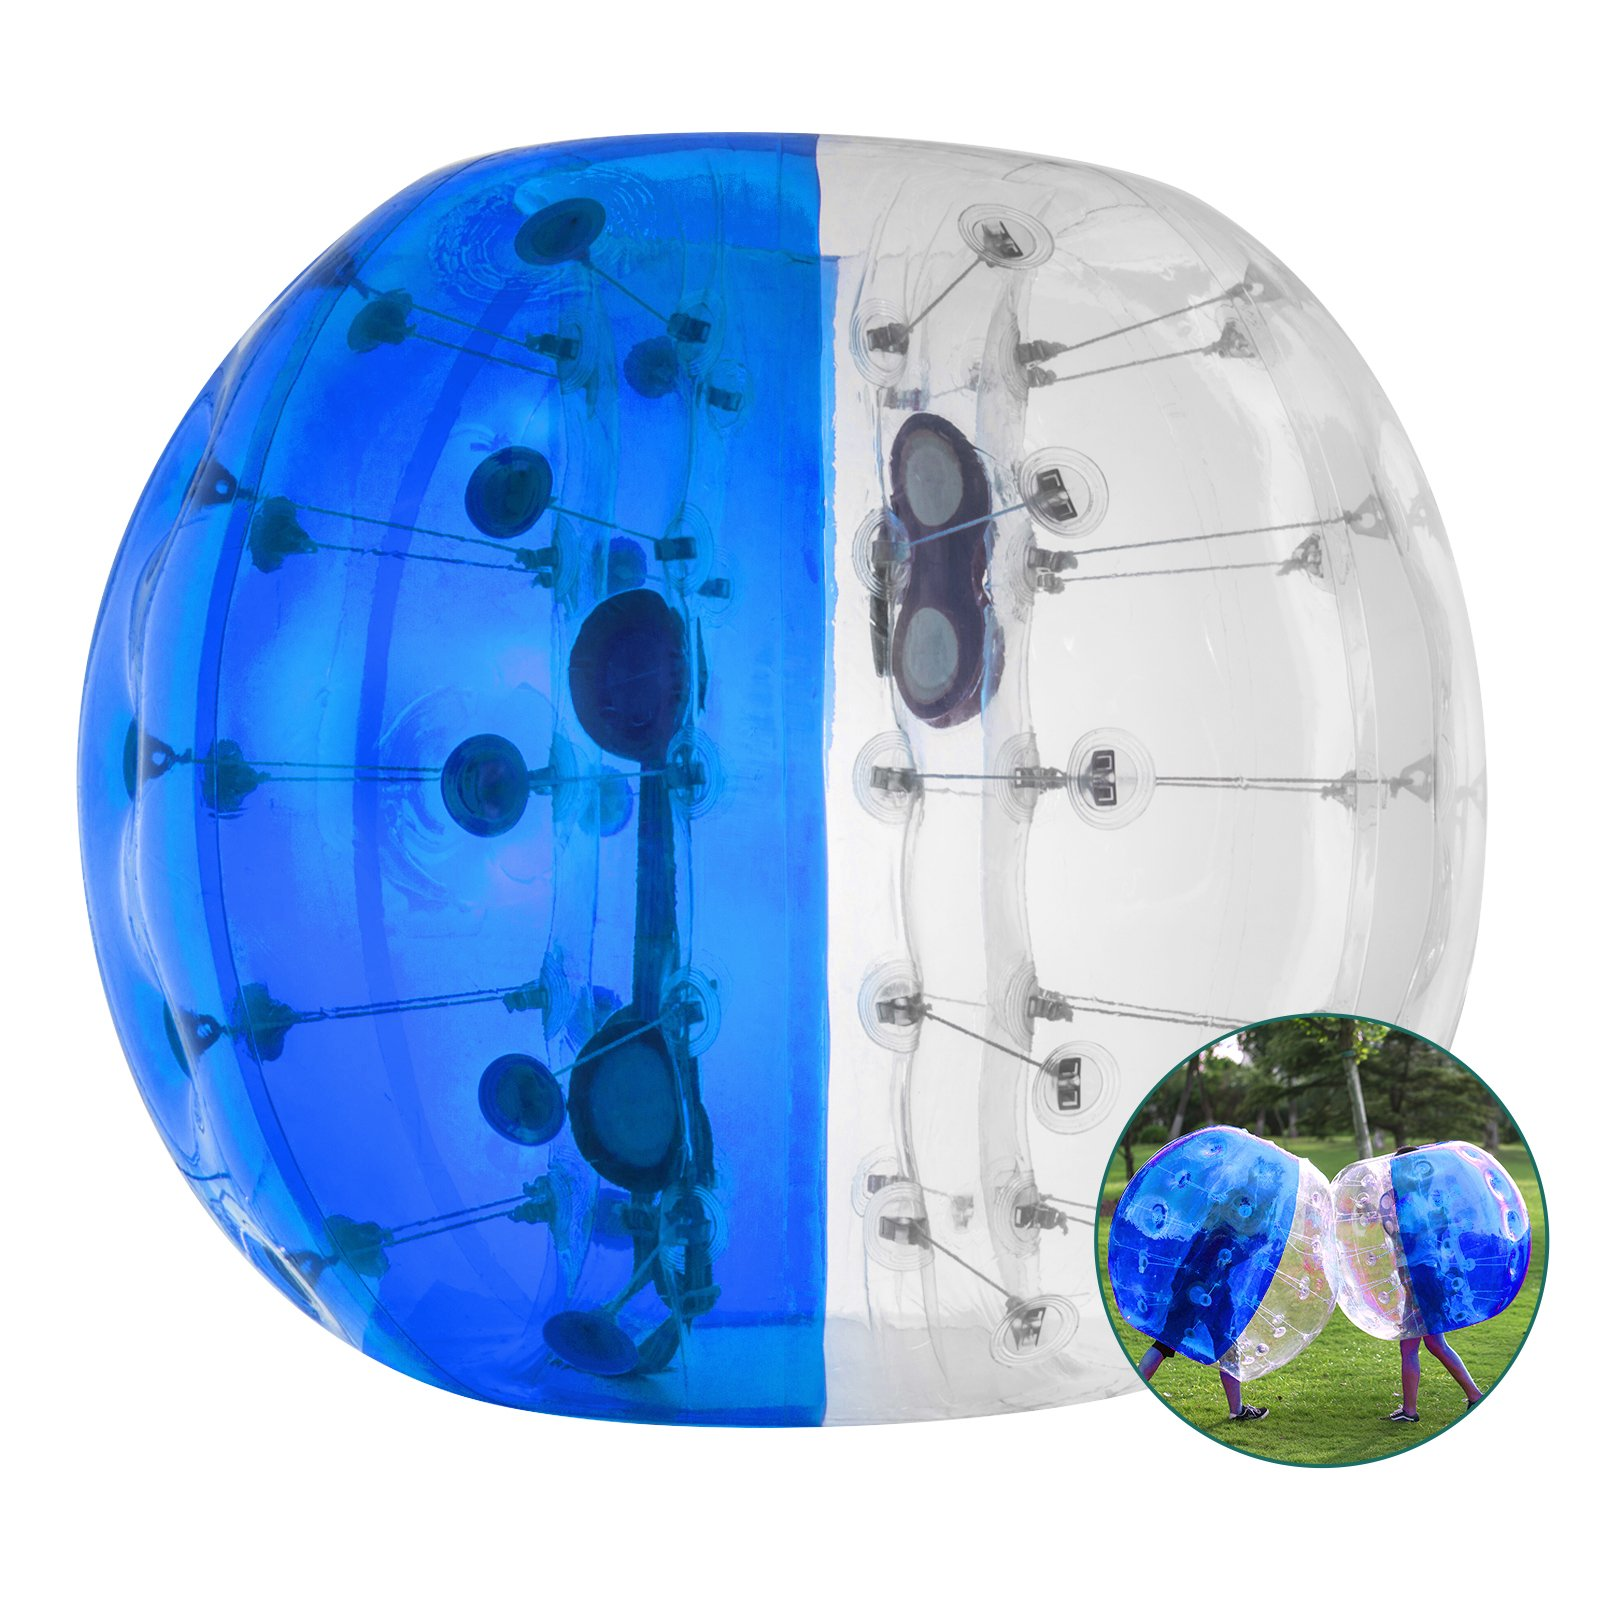 LOVSHARE 4FT Inflatable Bumper PVC Bubble Soccer Ball Dia 4FT 1.2M Zorbing Giant Human Hamster Ball for Adults or Child (4FT Blue and Transparent) by LOVSHARE